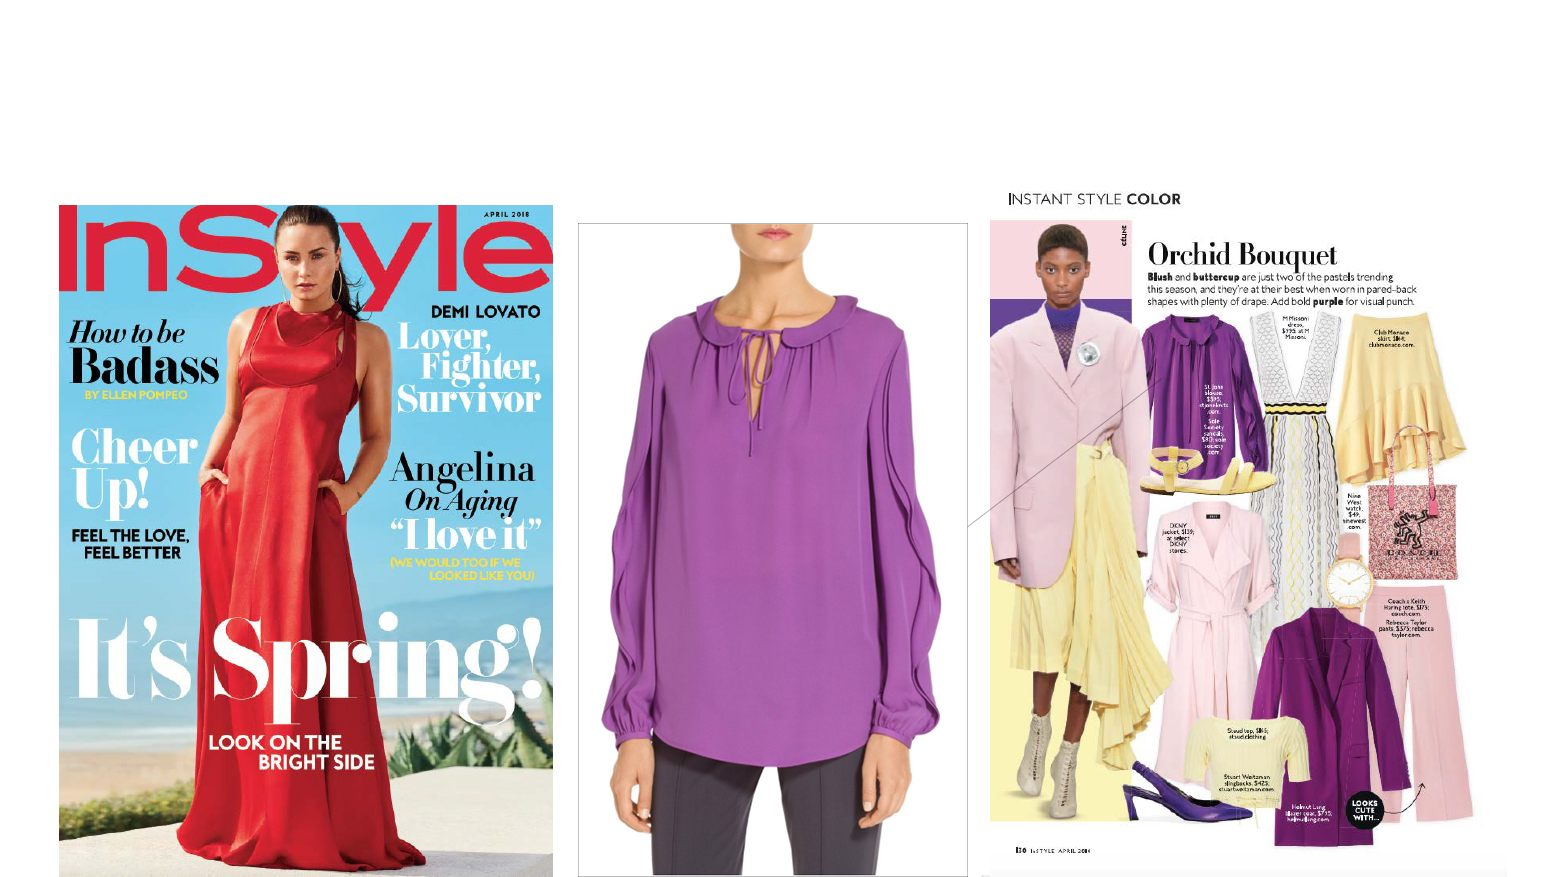 Saint John Stretch Silk Blouse in Orchid featured in the April 2018 issue of Instyle